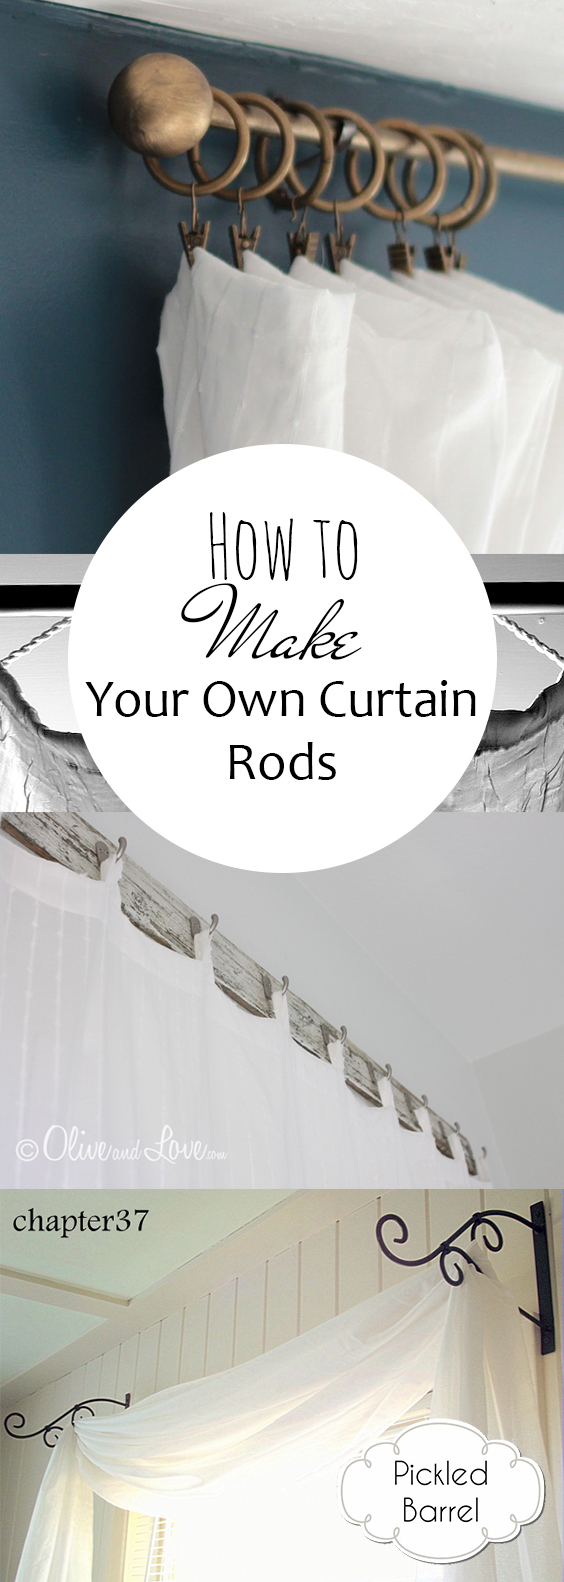 How to Make Your Own Curtain Rods| DIY Curtains, Curtain Rods, DIY Home, DIY Home Decor, Curtains, DIY Curtain, DIY Home Stuff, Curtain Rod Projects #CurtainRods #DIY